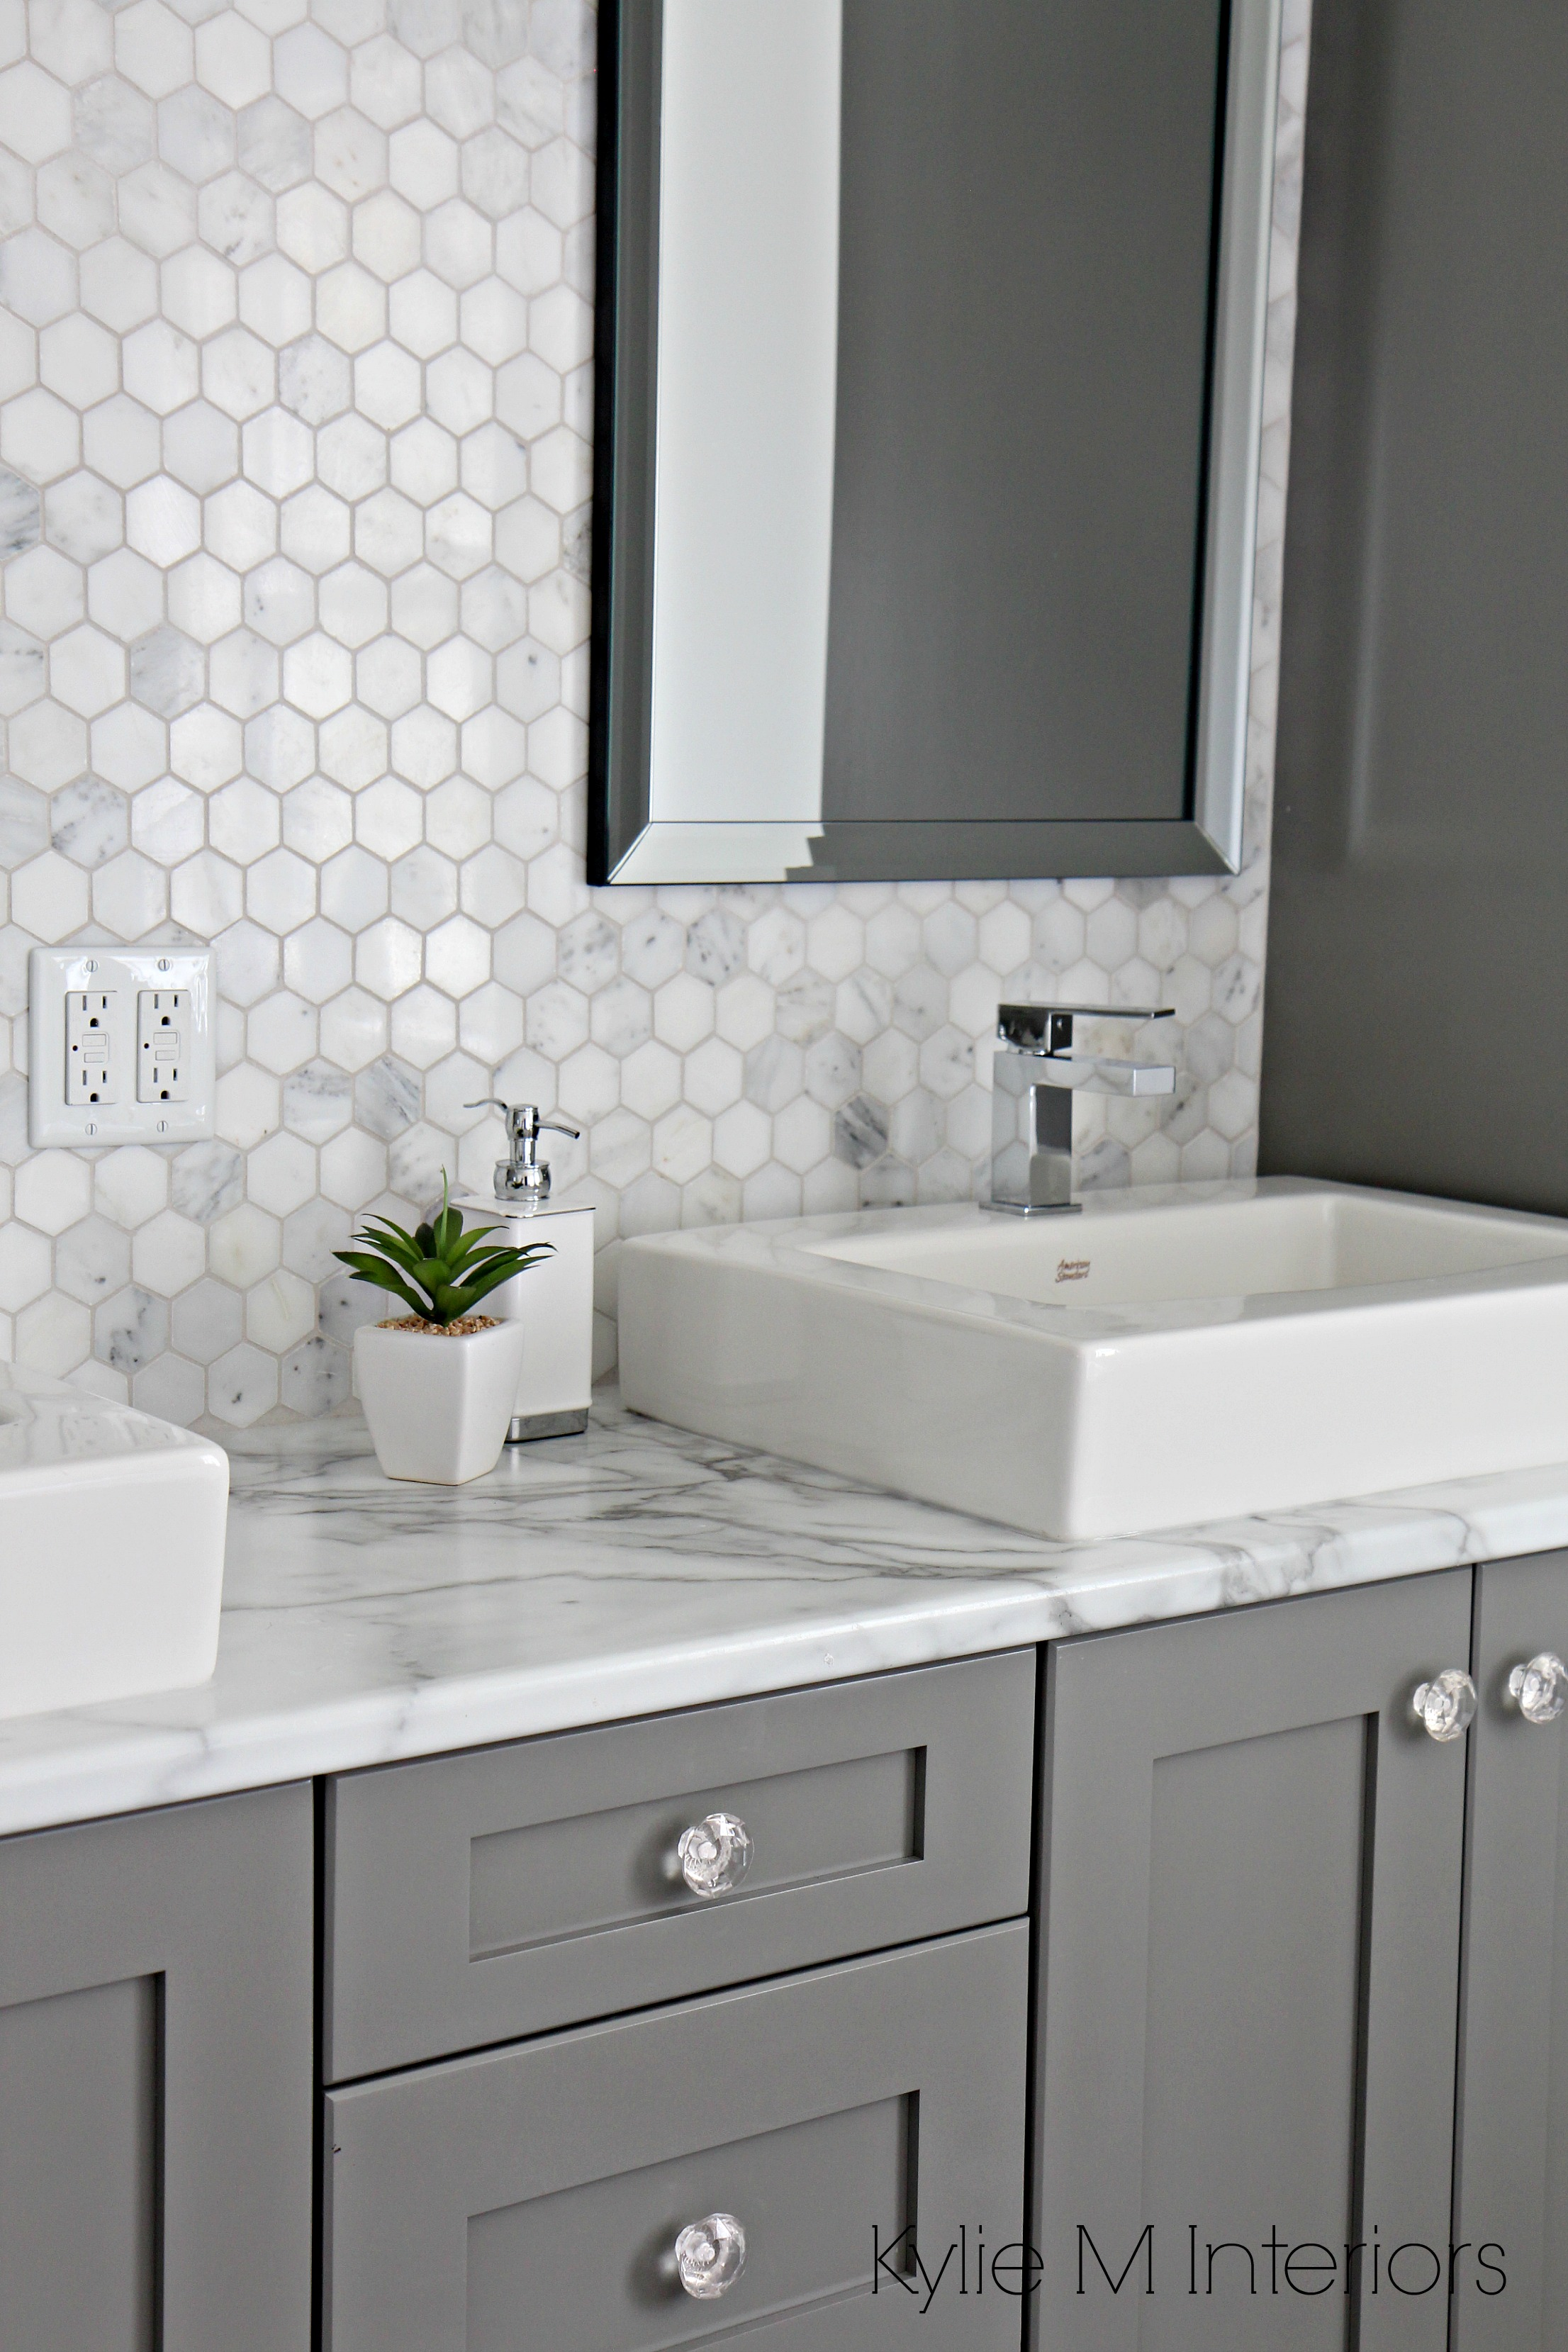 Formica 180fx Calacatta Marble Laminate Countertop Hexagon Mosaic Marble Backsplash And Chelse